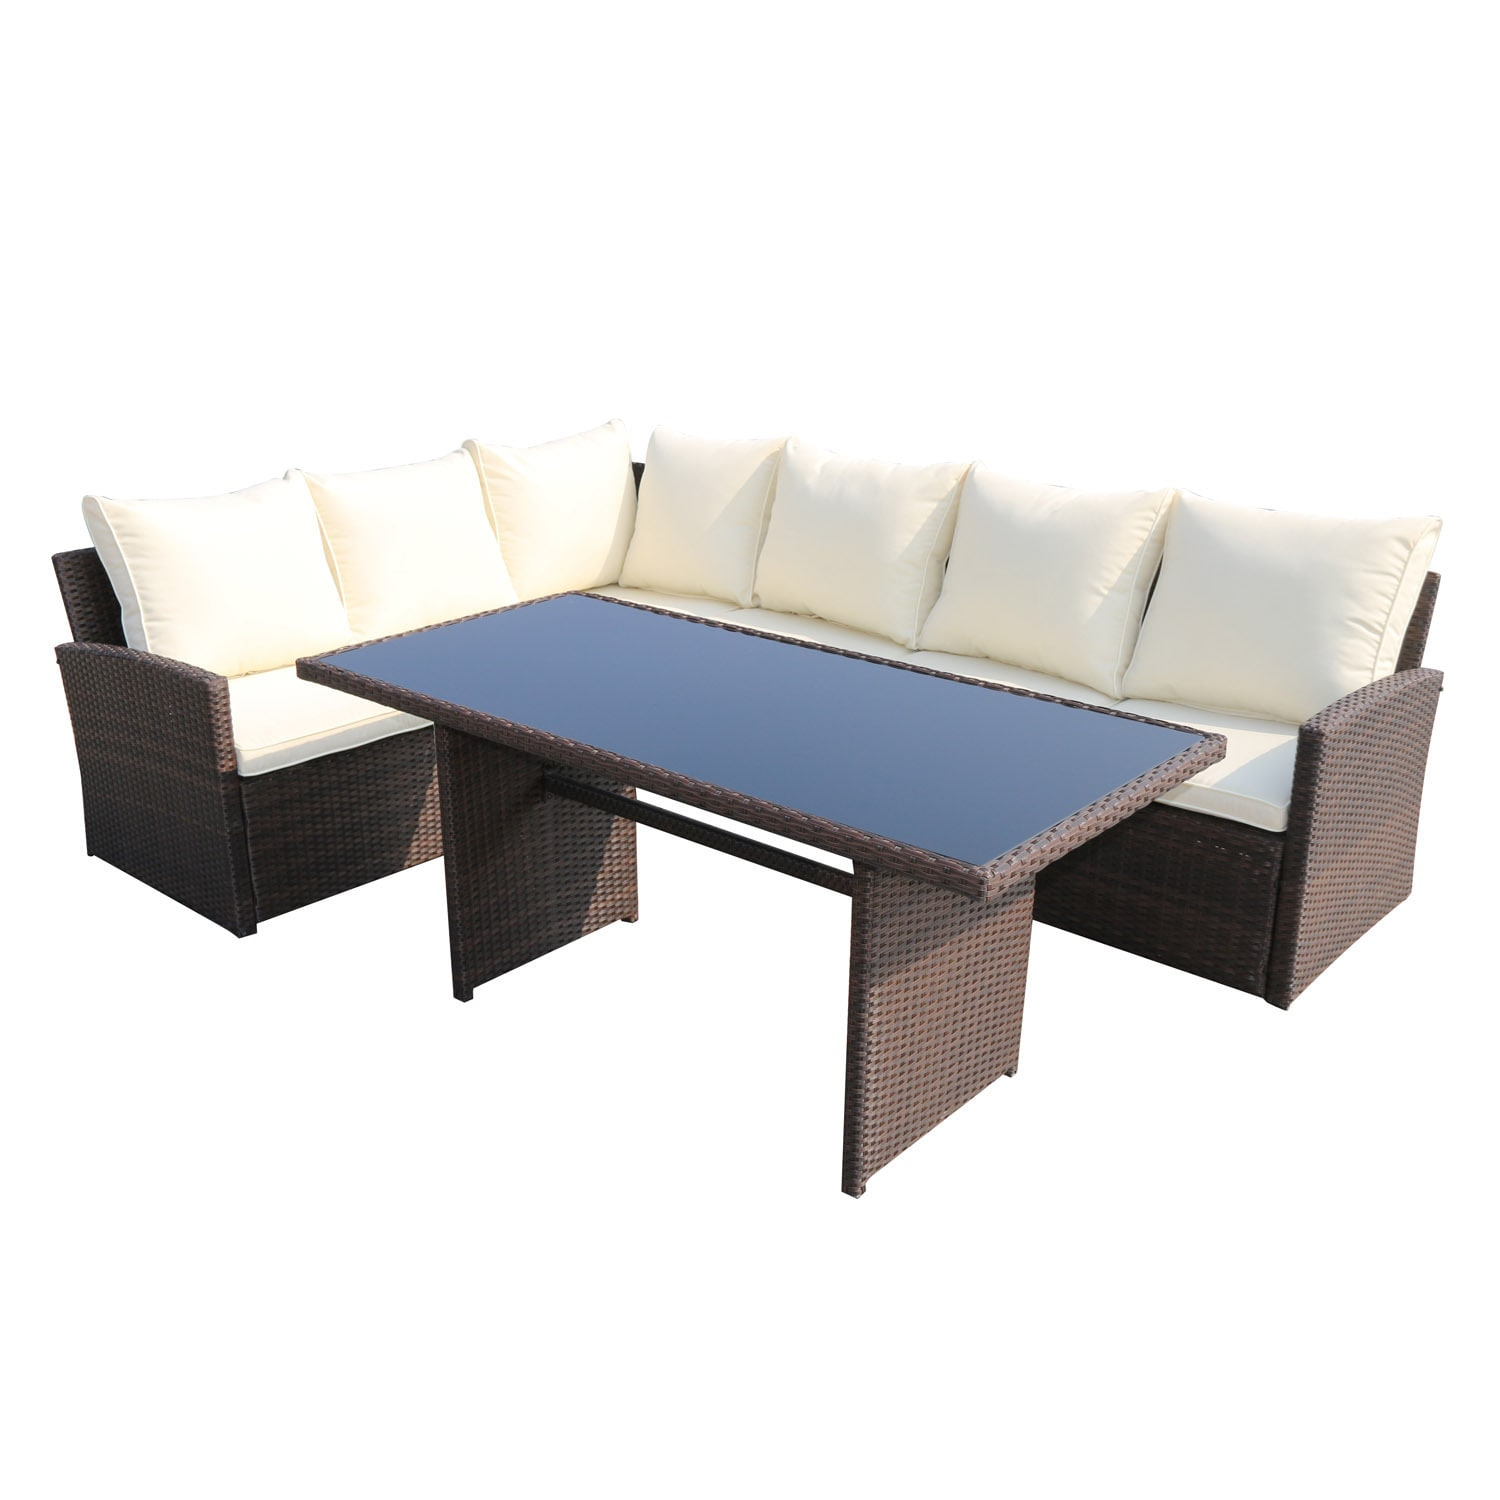 Rattan Sofa Near Me Barcelona Rattan Sofa Patio Dining Set